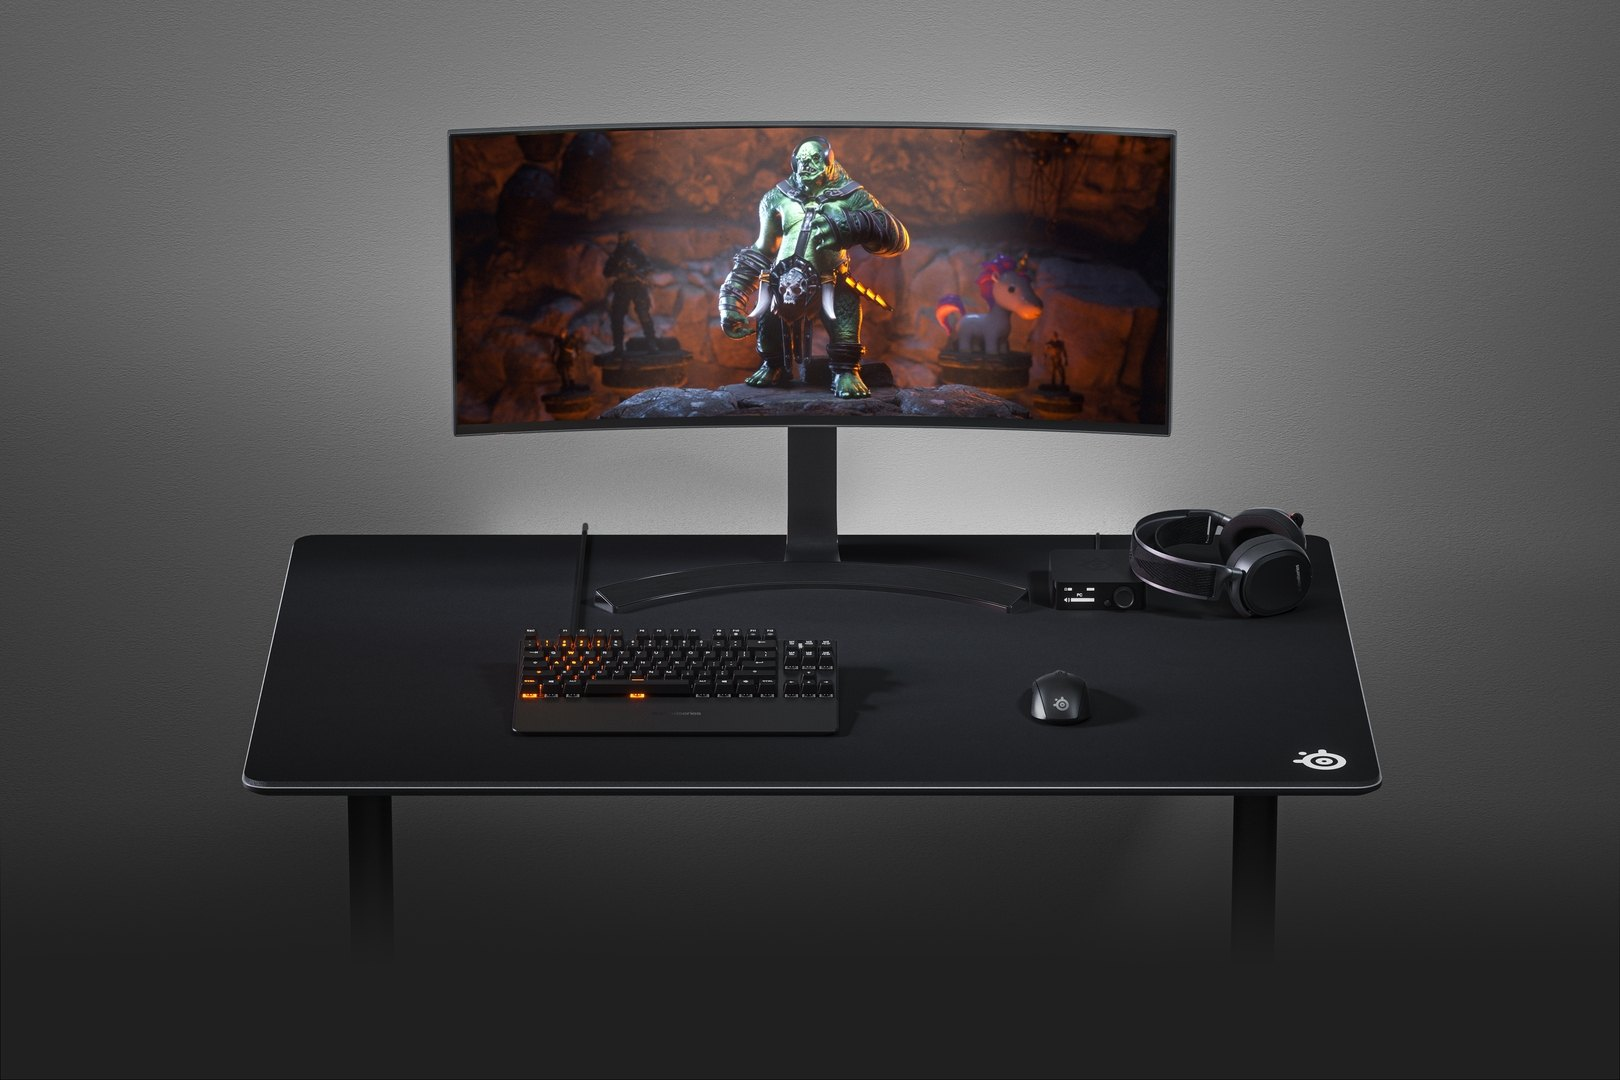 QcK 4XL mousepad on a PC gaming desk with a monitor, keyboard, headset, and mouse